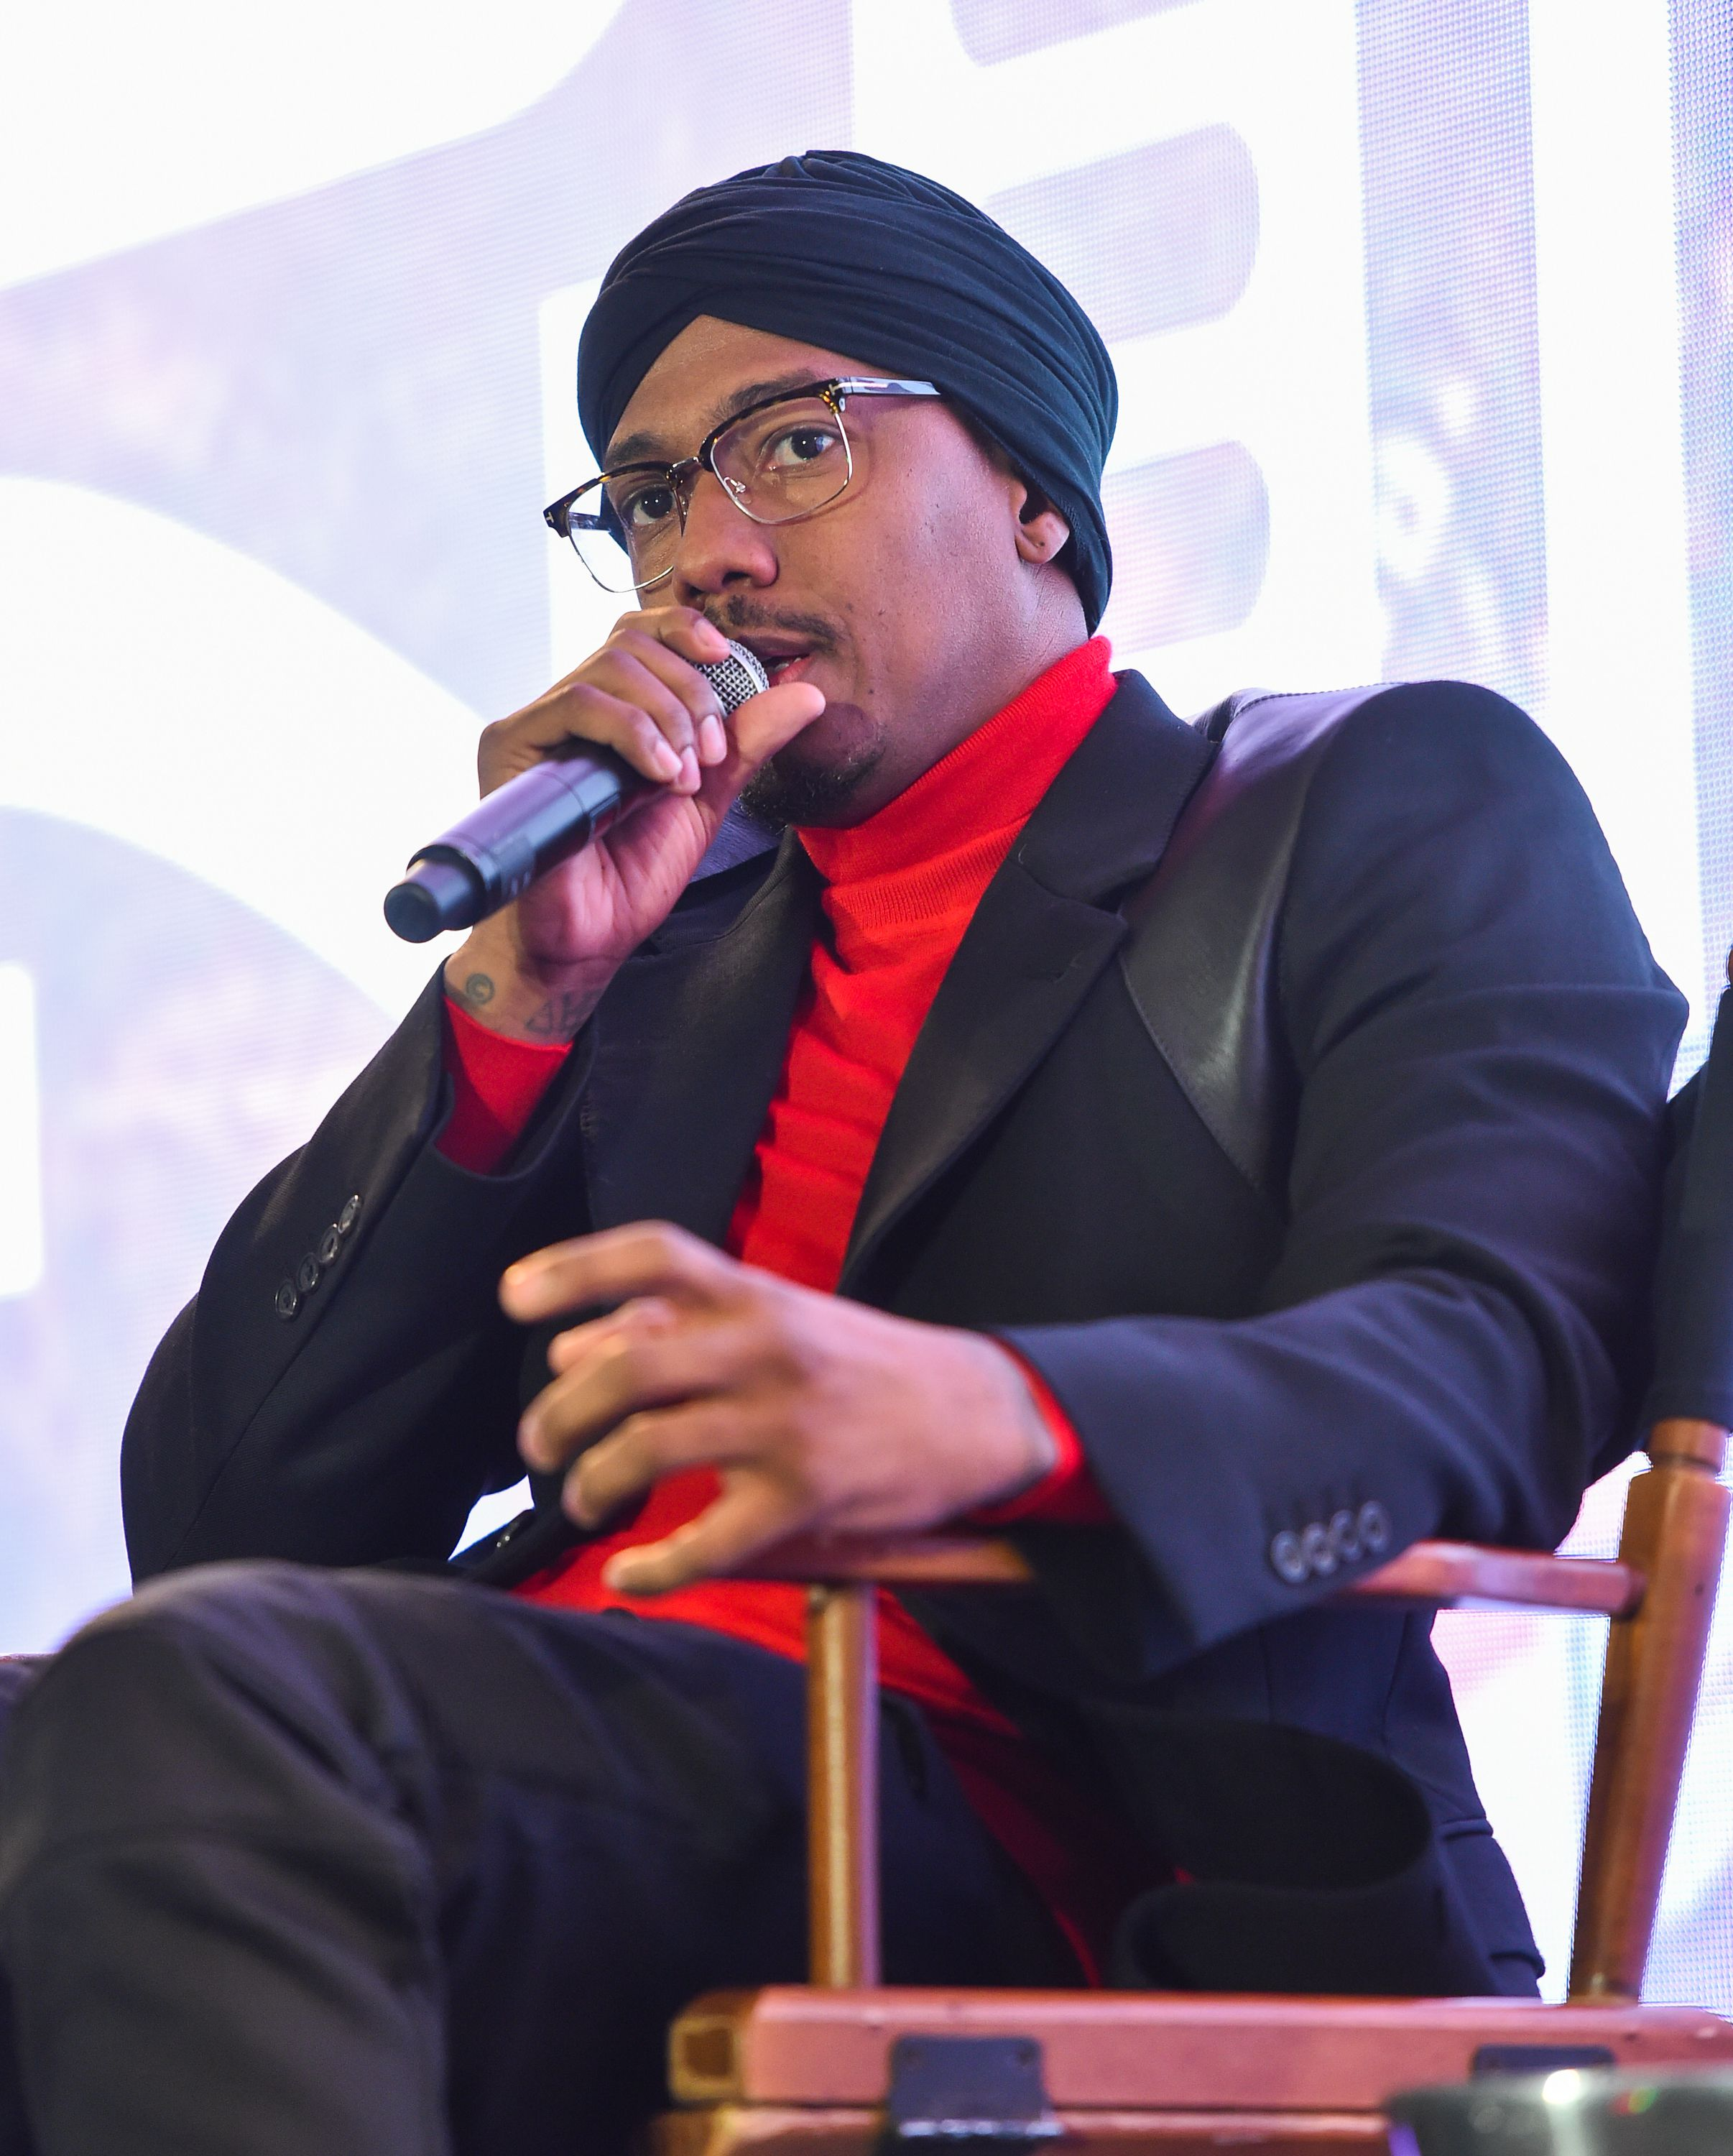 https://www.intouchweekly.com/posts/nick-cannon-fired-amid